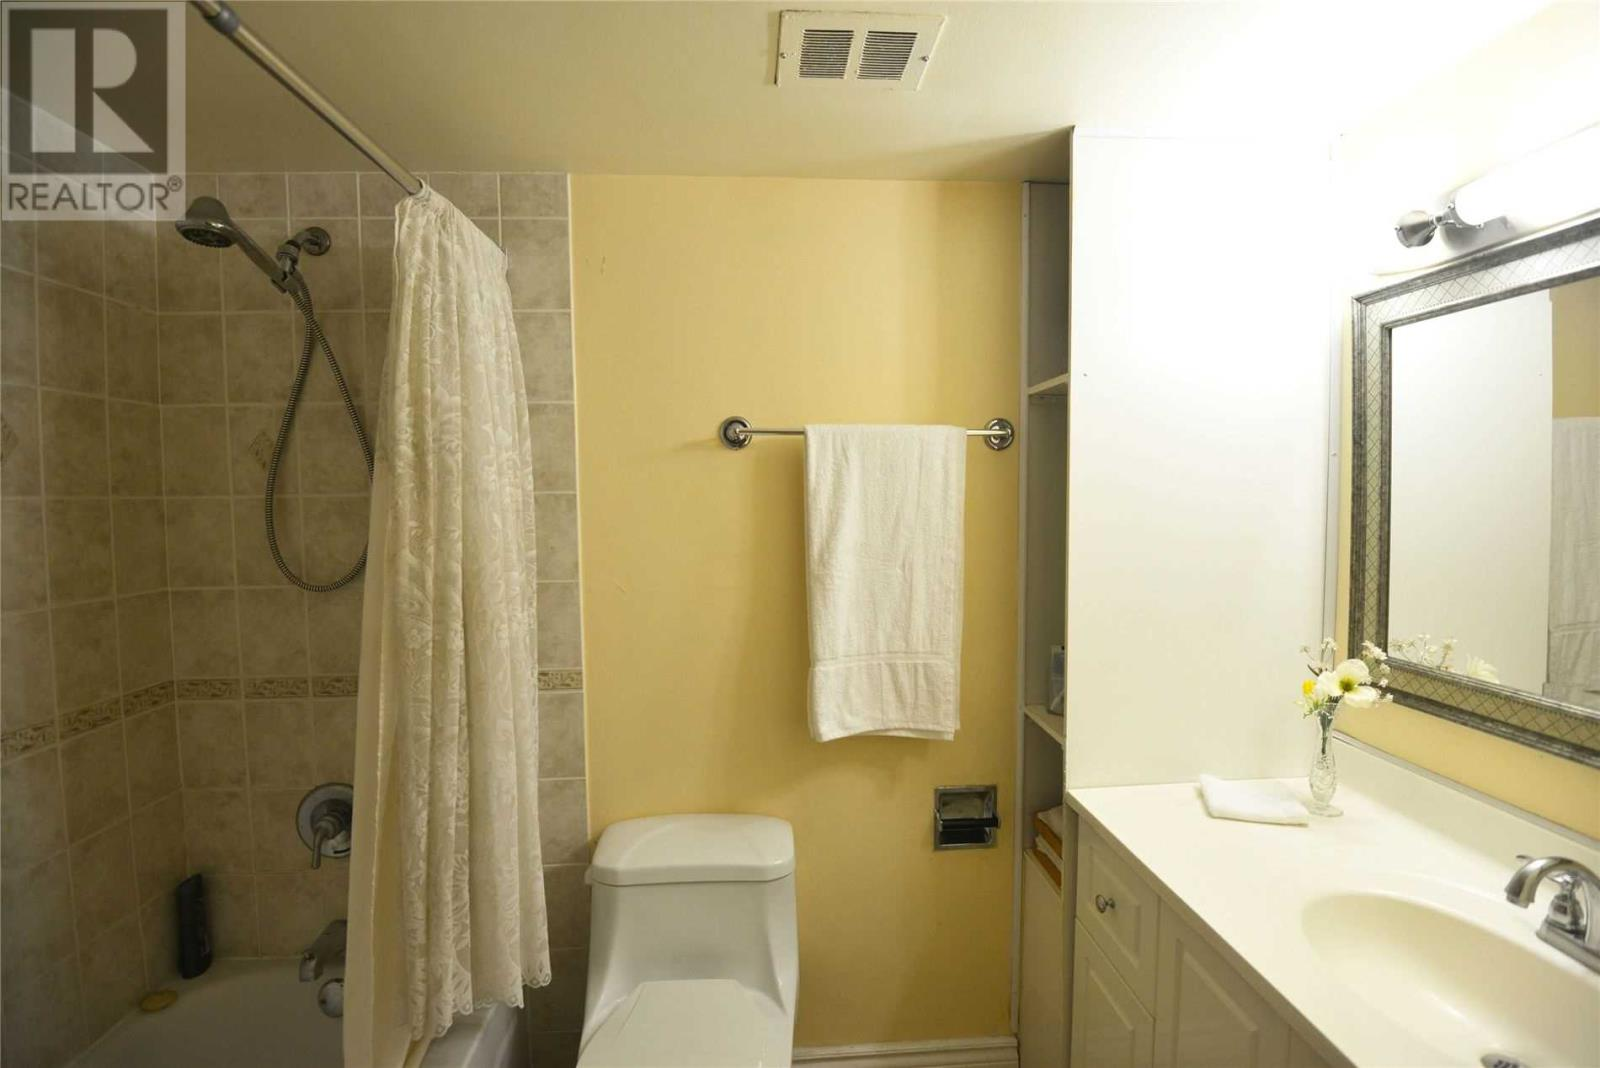 #803 -3170 Kirwin Ave, Mississauga, Ontario  L5A 3R1 - Photo 15 - W4667390